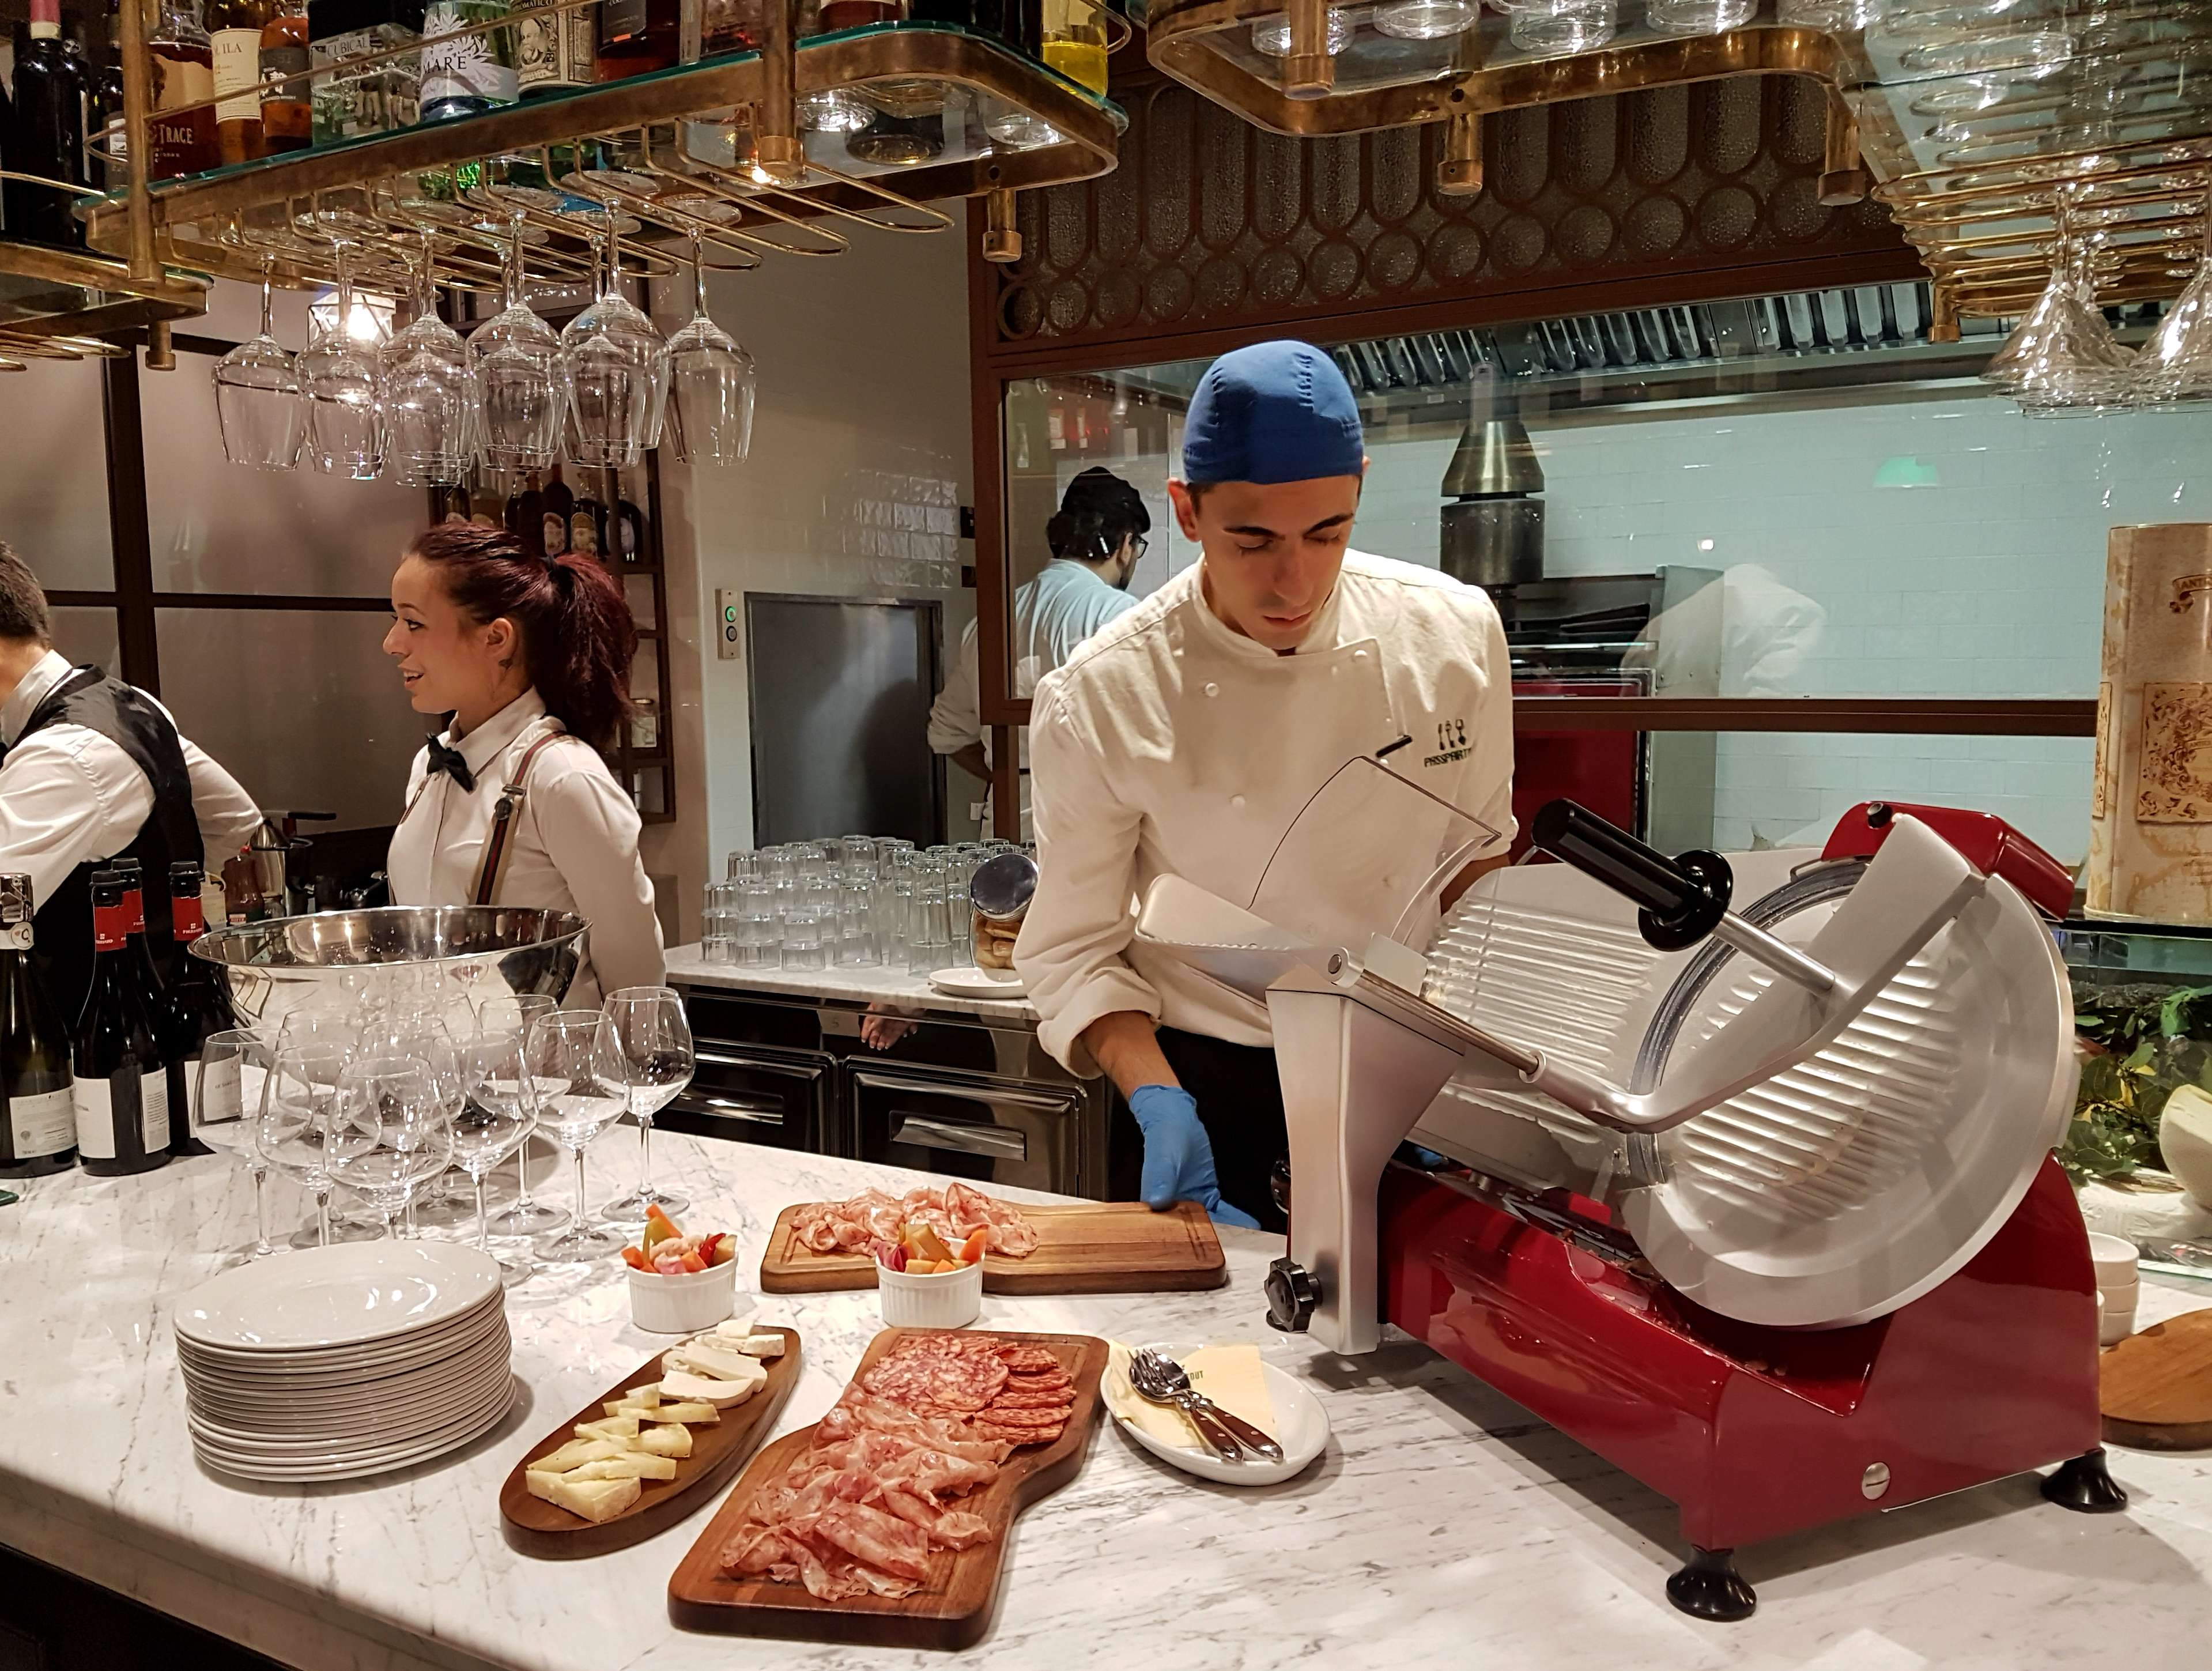 Passpartout Roma is one of the best restaurants near the Vatican, in Borgo Pio, serving coffee, lunch, dinner, cocktails. #visitrome #visitItaly